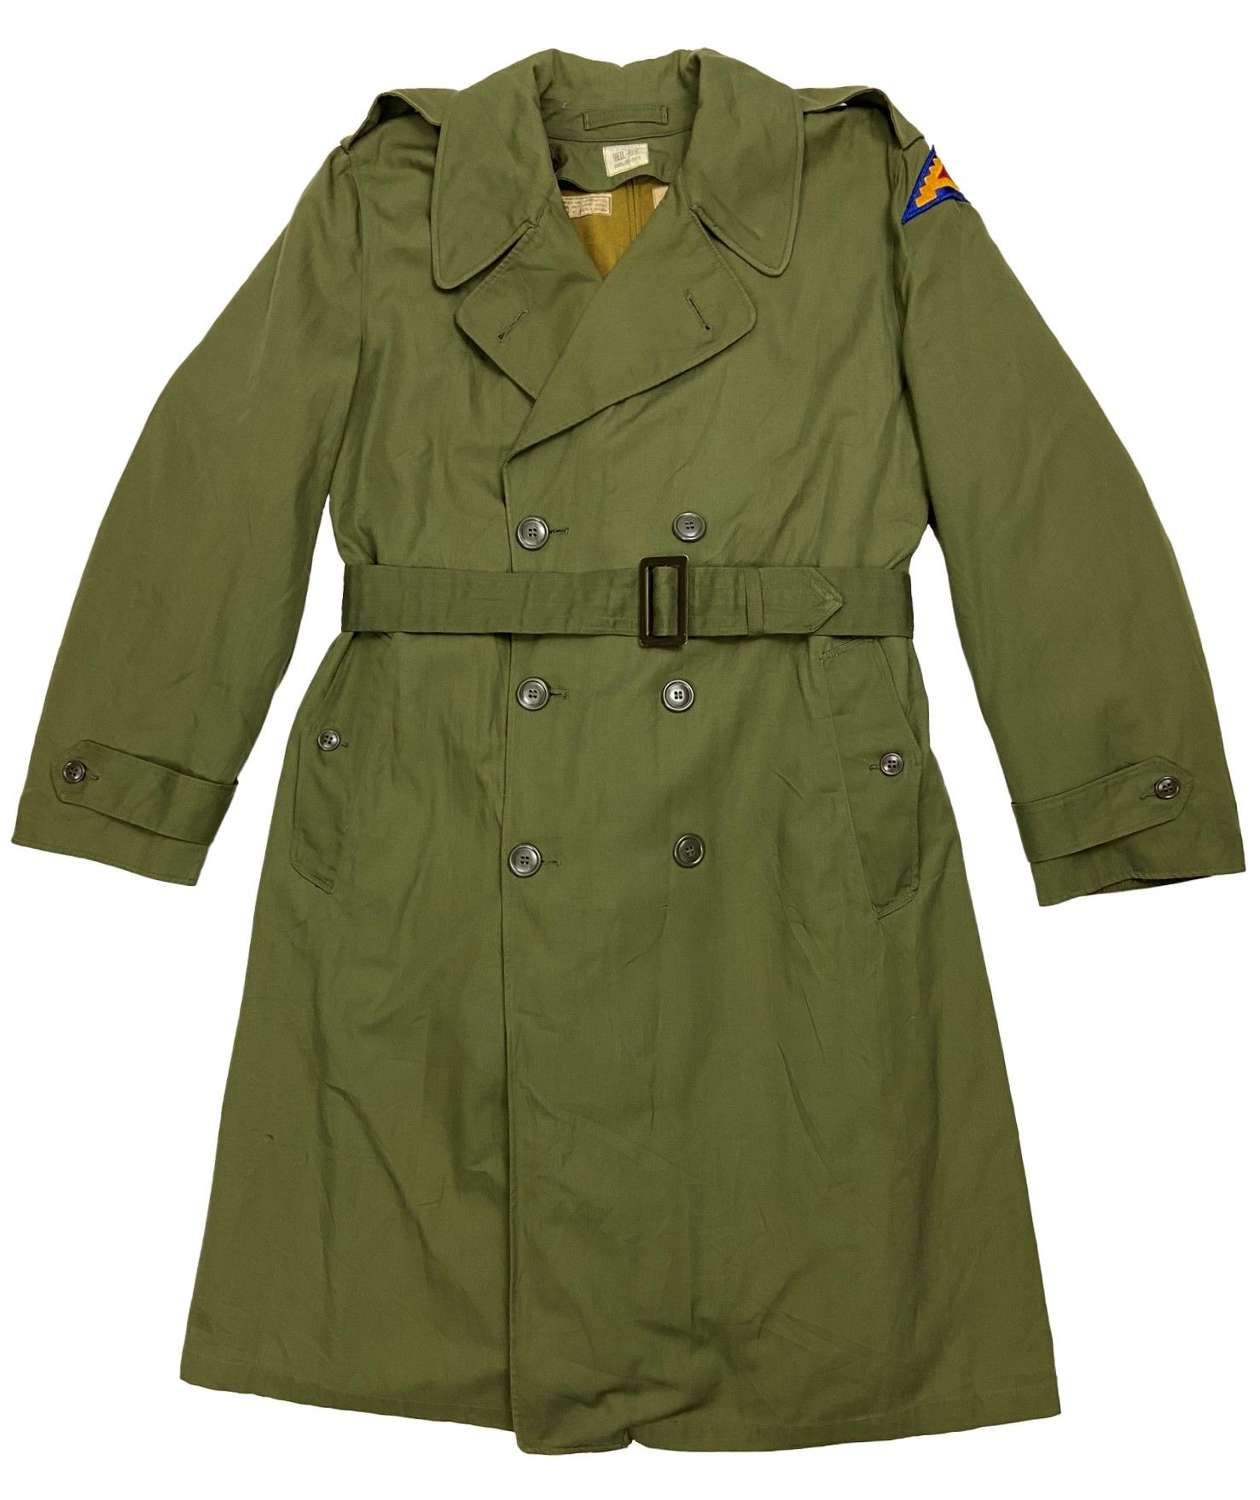 Original 1960s US Army O.G. 107 Raincoat - Size Regular Medium